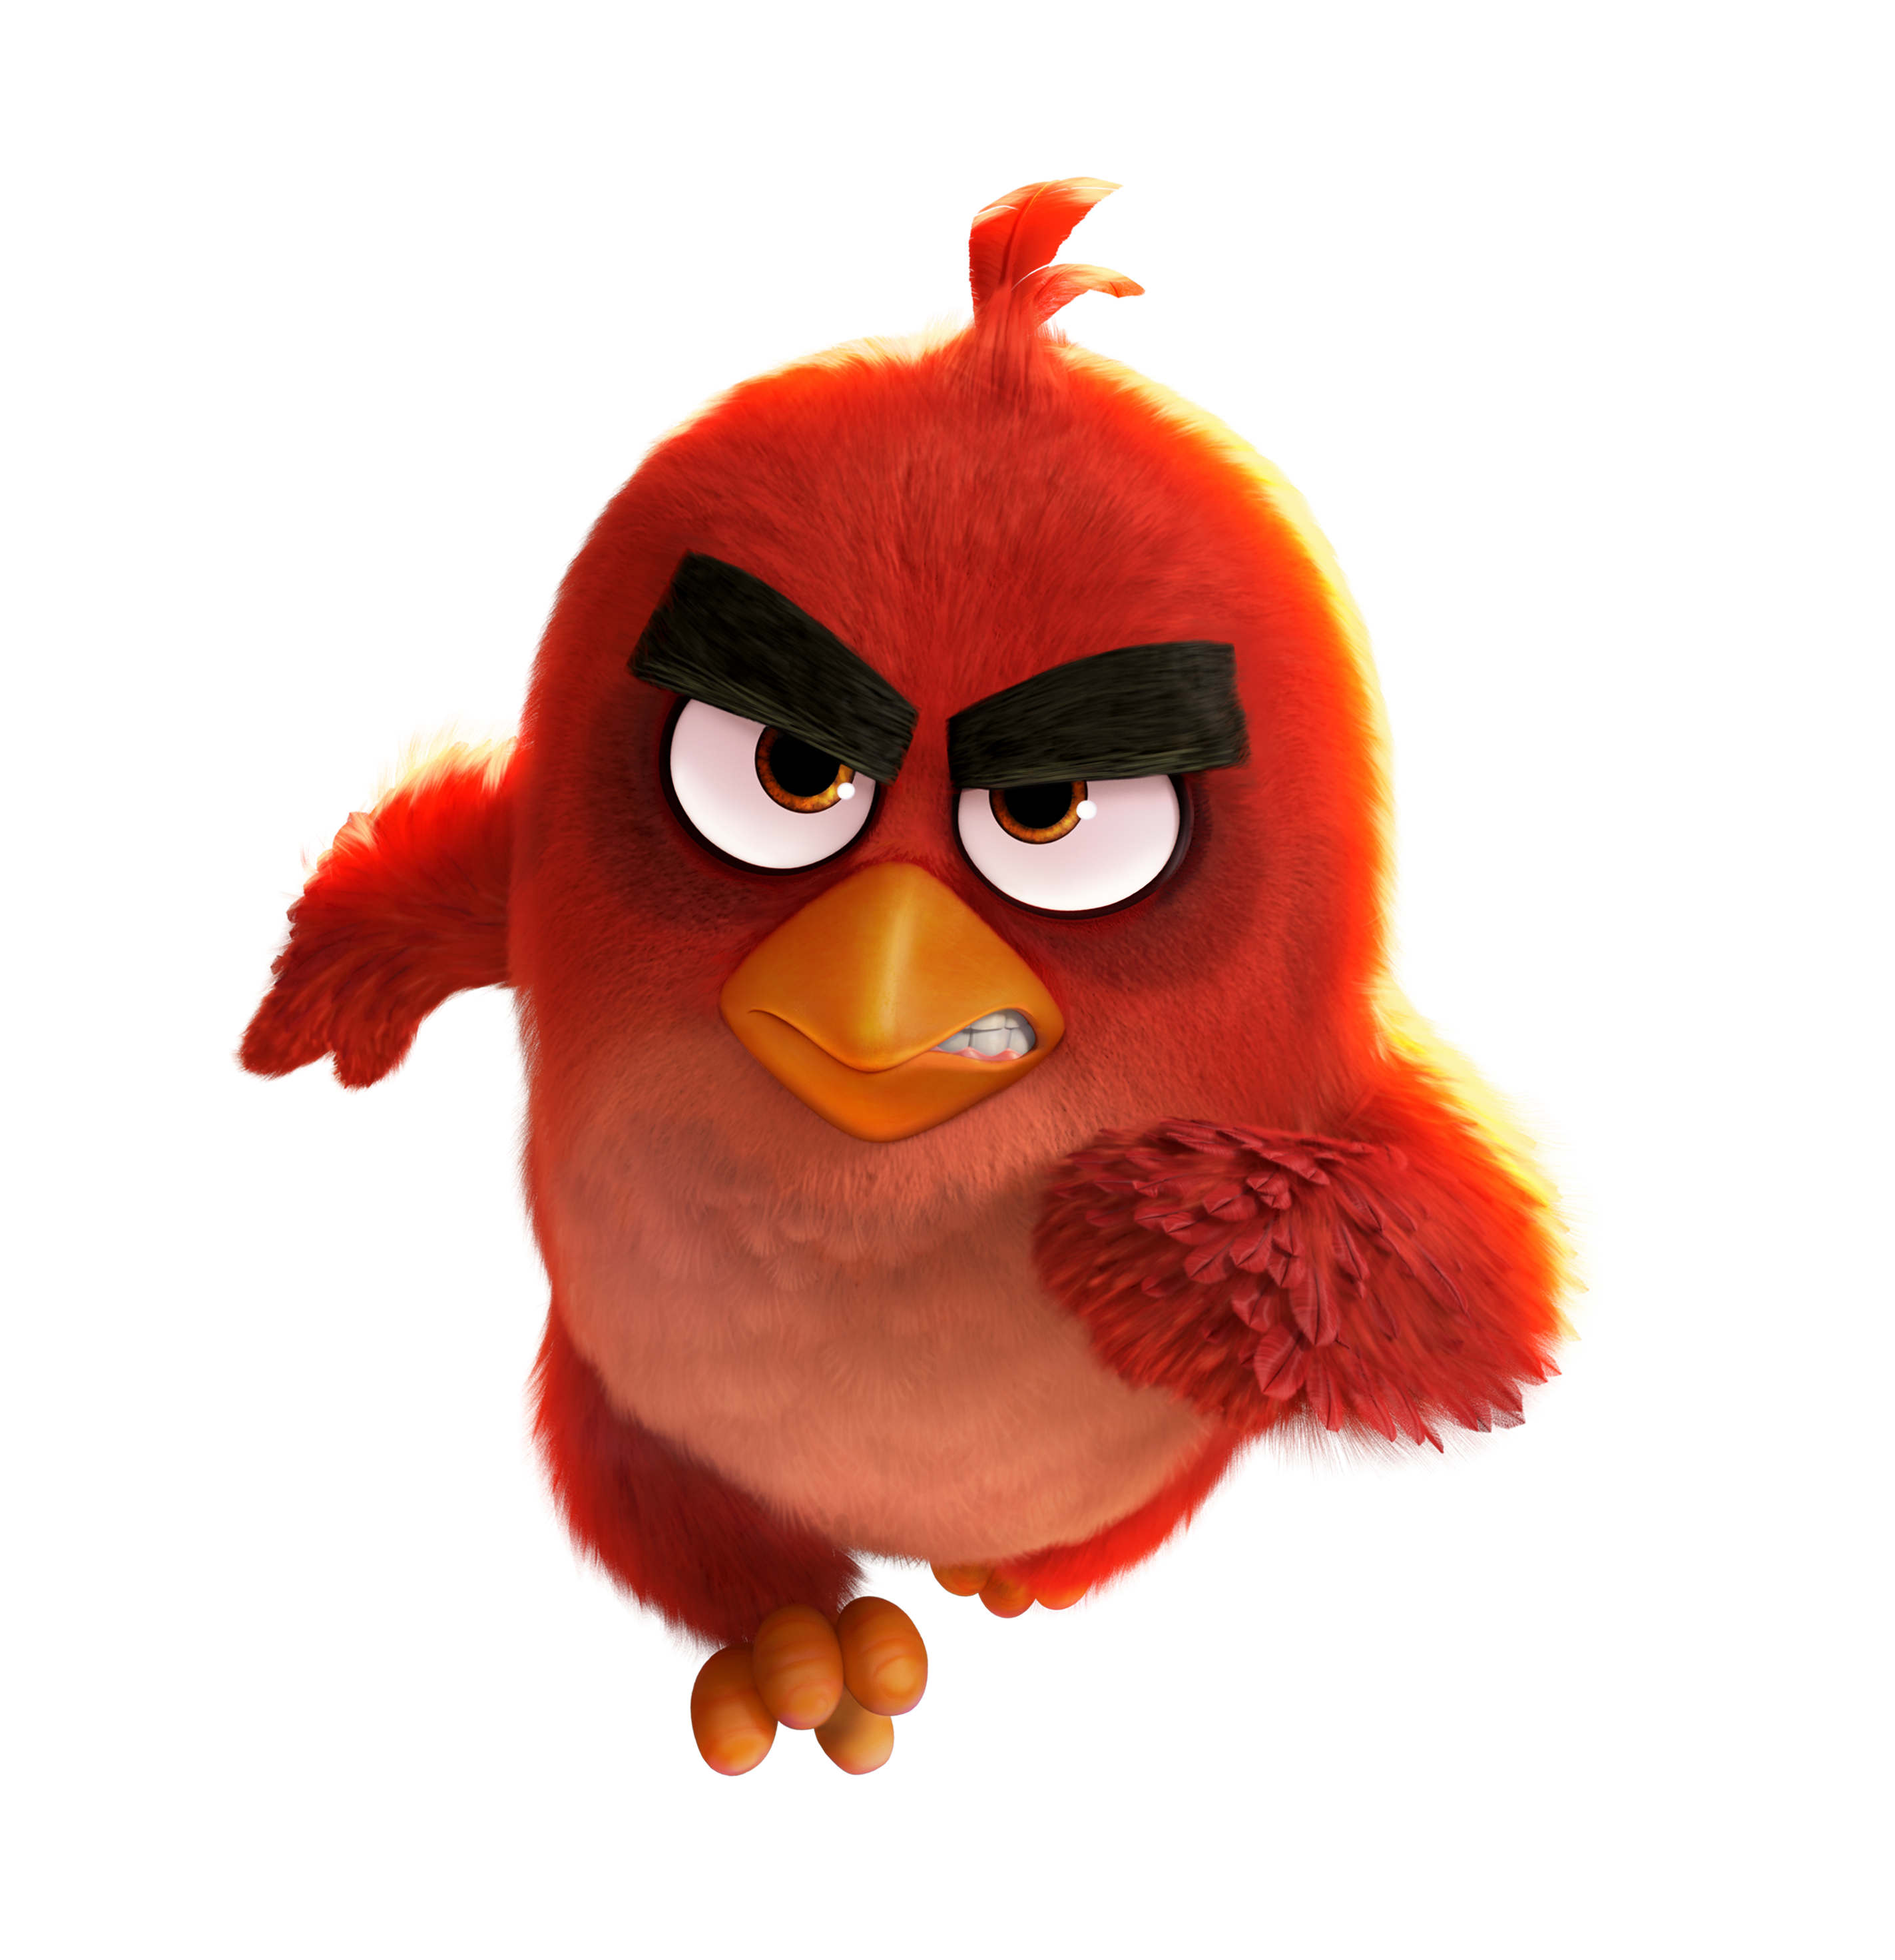 Eagle Movie Angry Transparent Mighty The Birds PNG Image